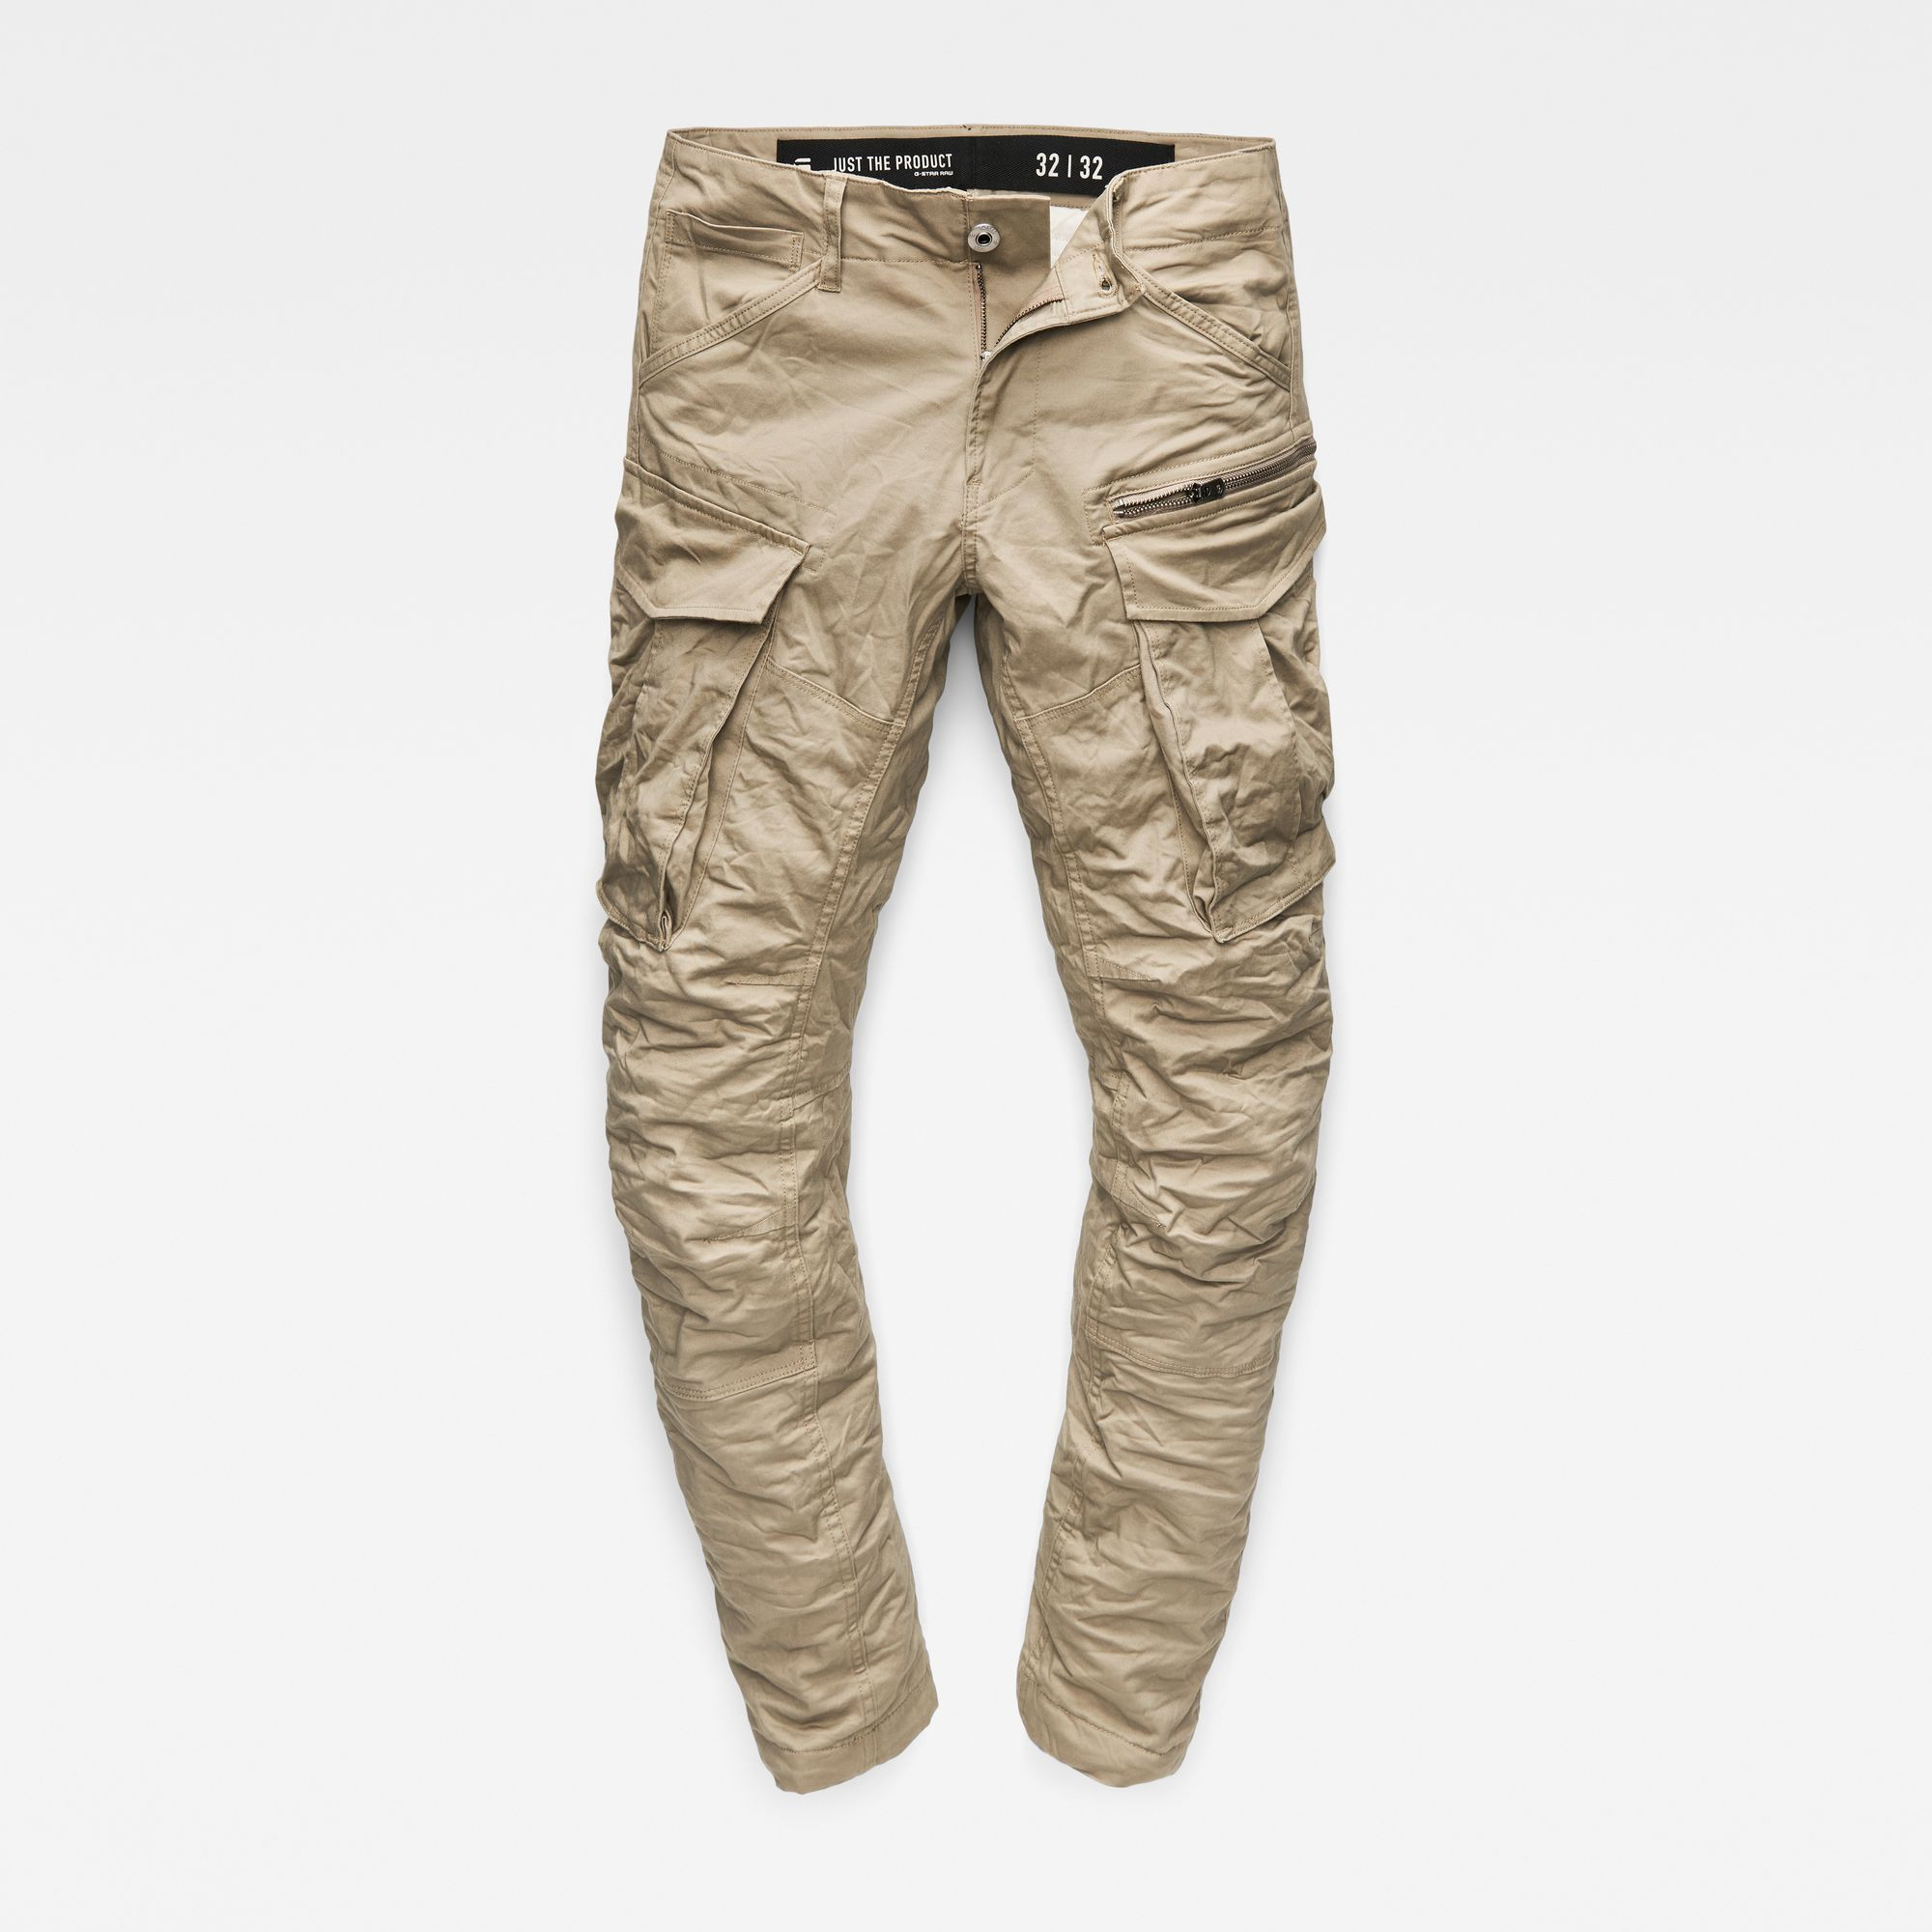 Rovic Zip 3D Straight Tapered Pant in 2020 | Cargo pants men